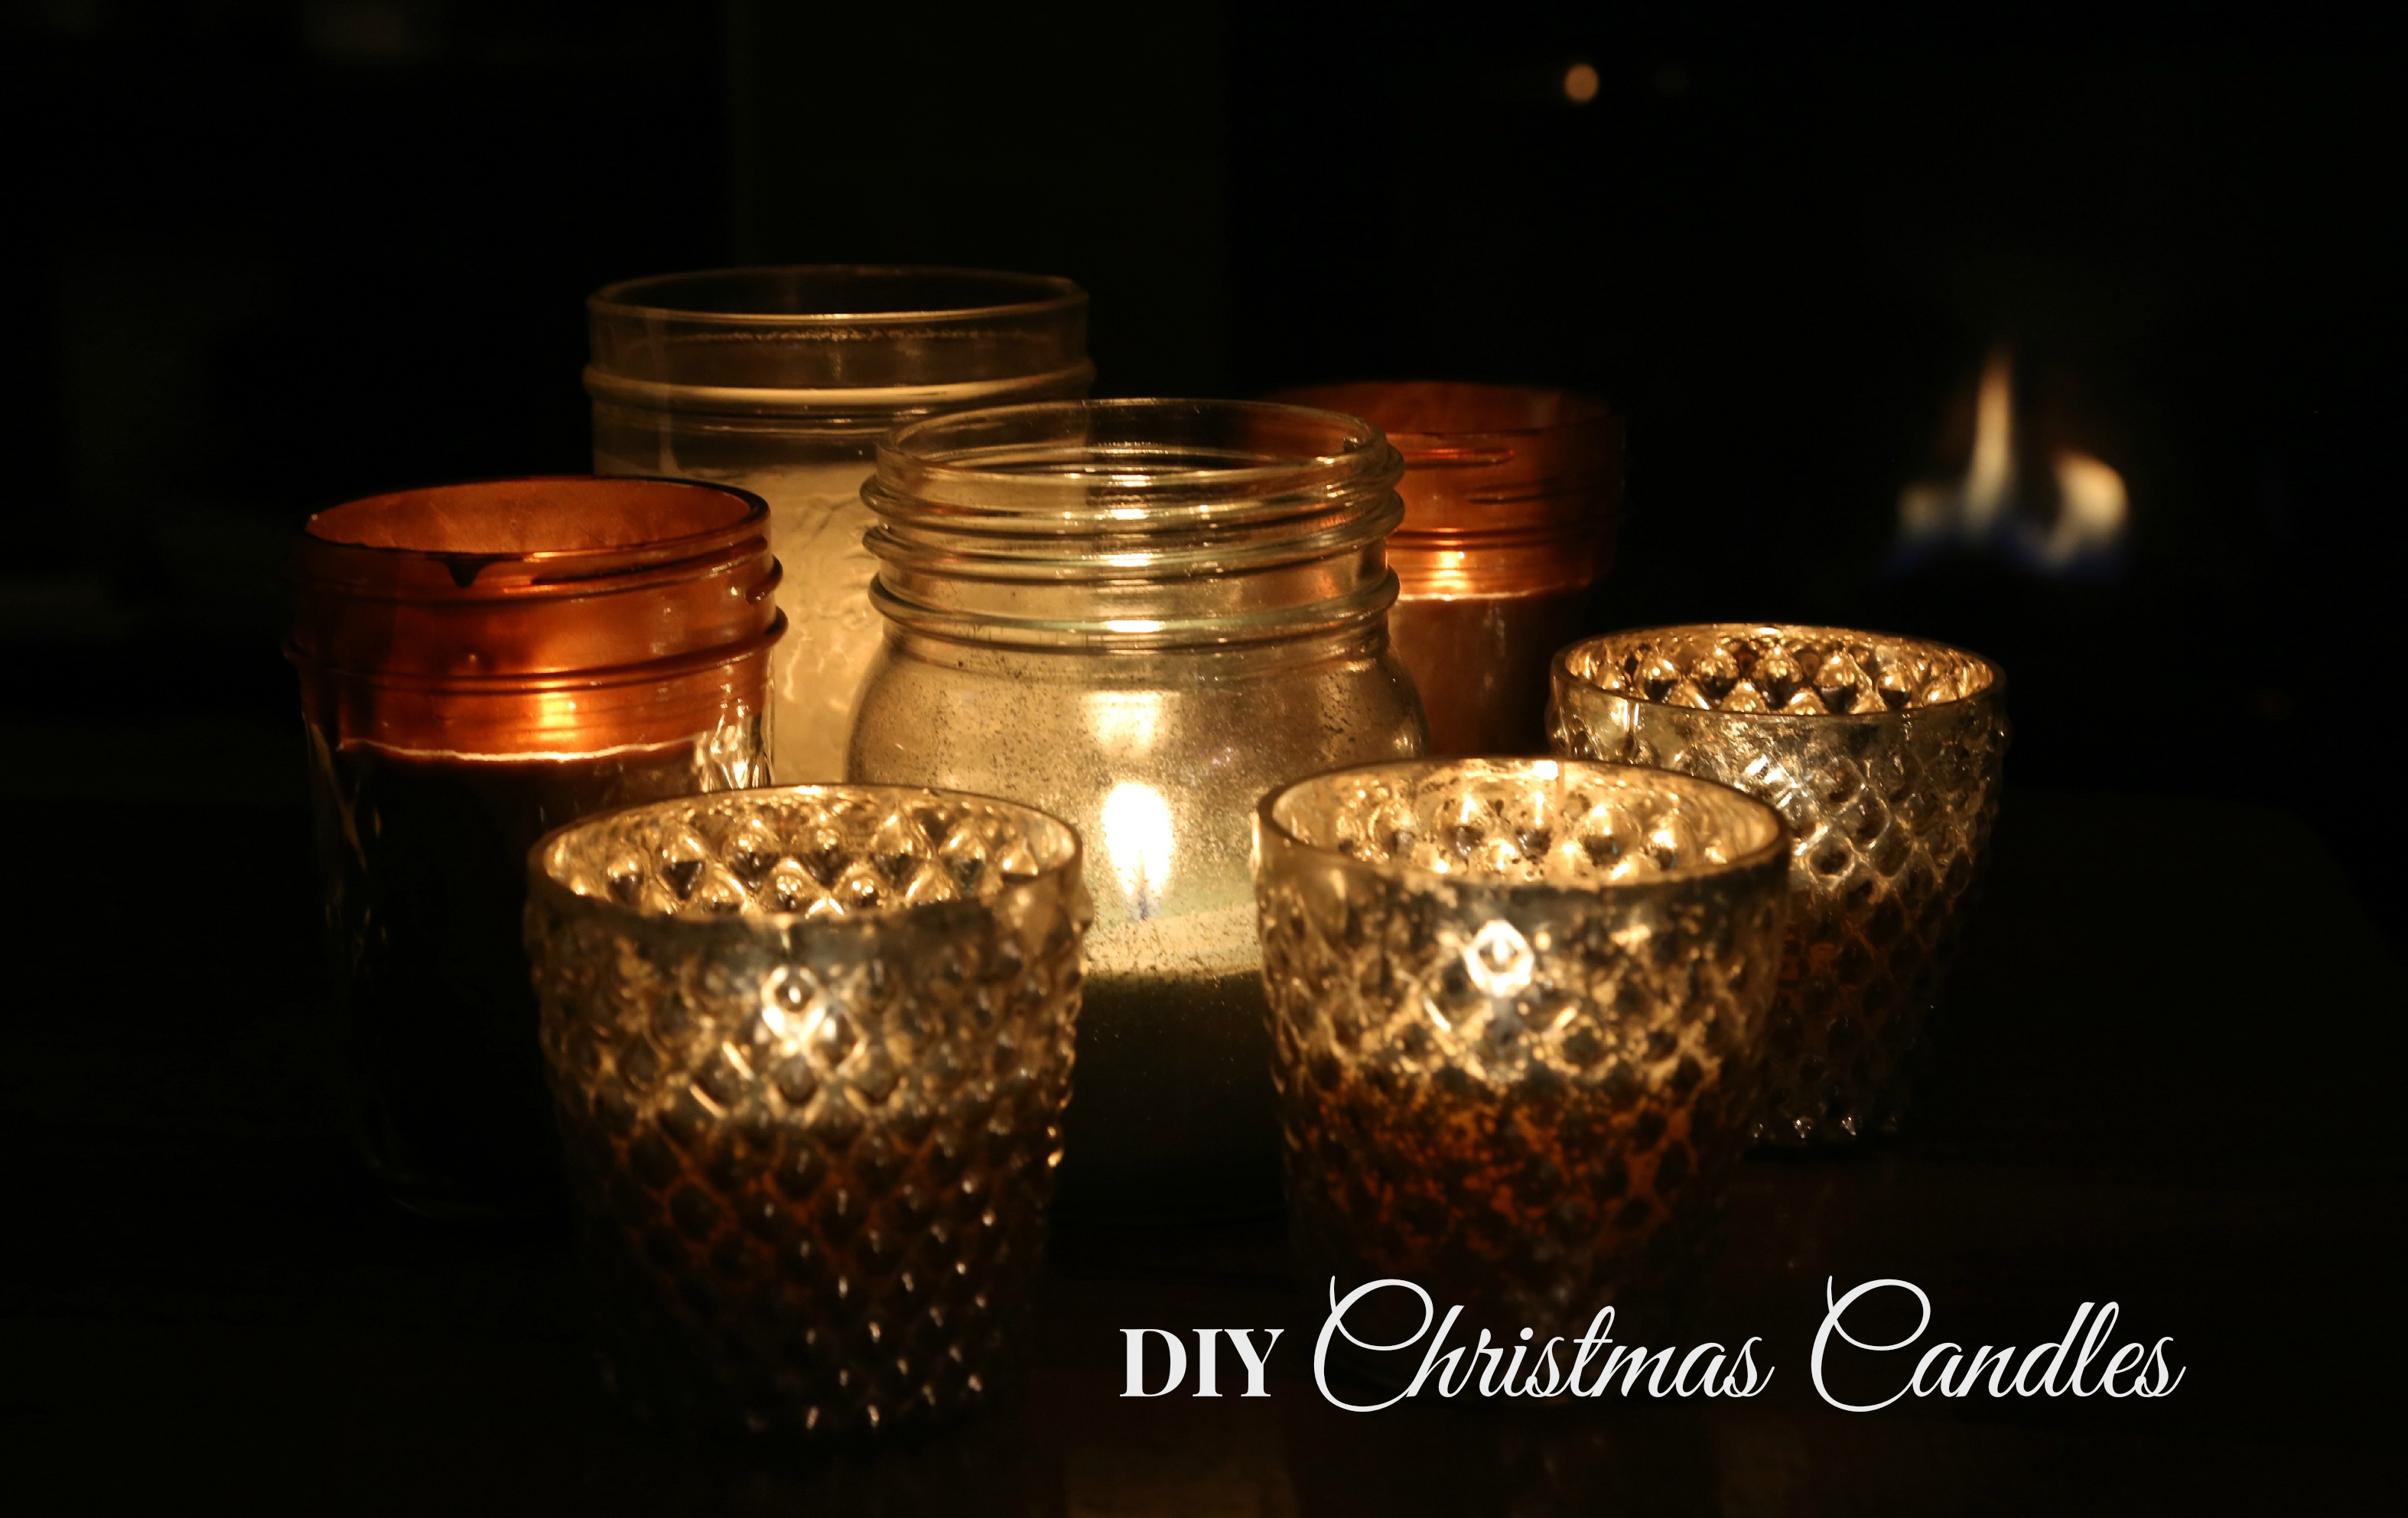 Most Fragrant Candles Diy Christmas Candles Cashmere And Camo